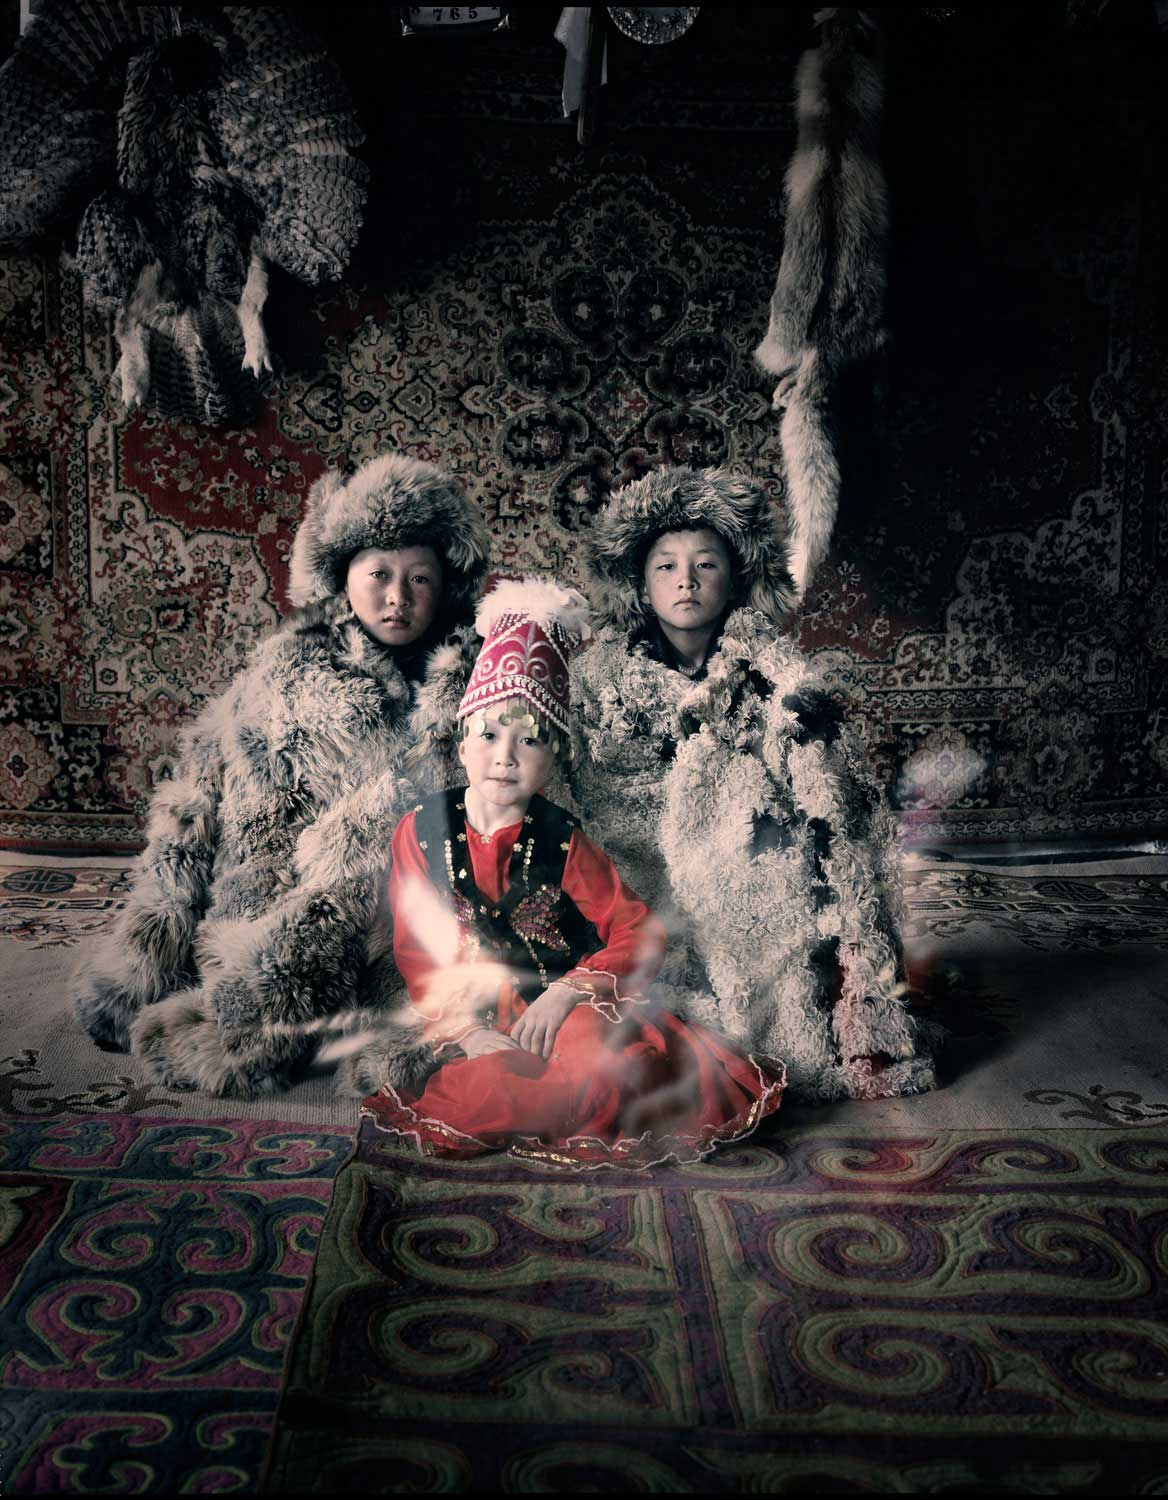 The Kazakhs, Mongolia. Photo by Jimmy Nelson | Yellowtrace